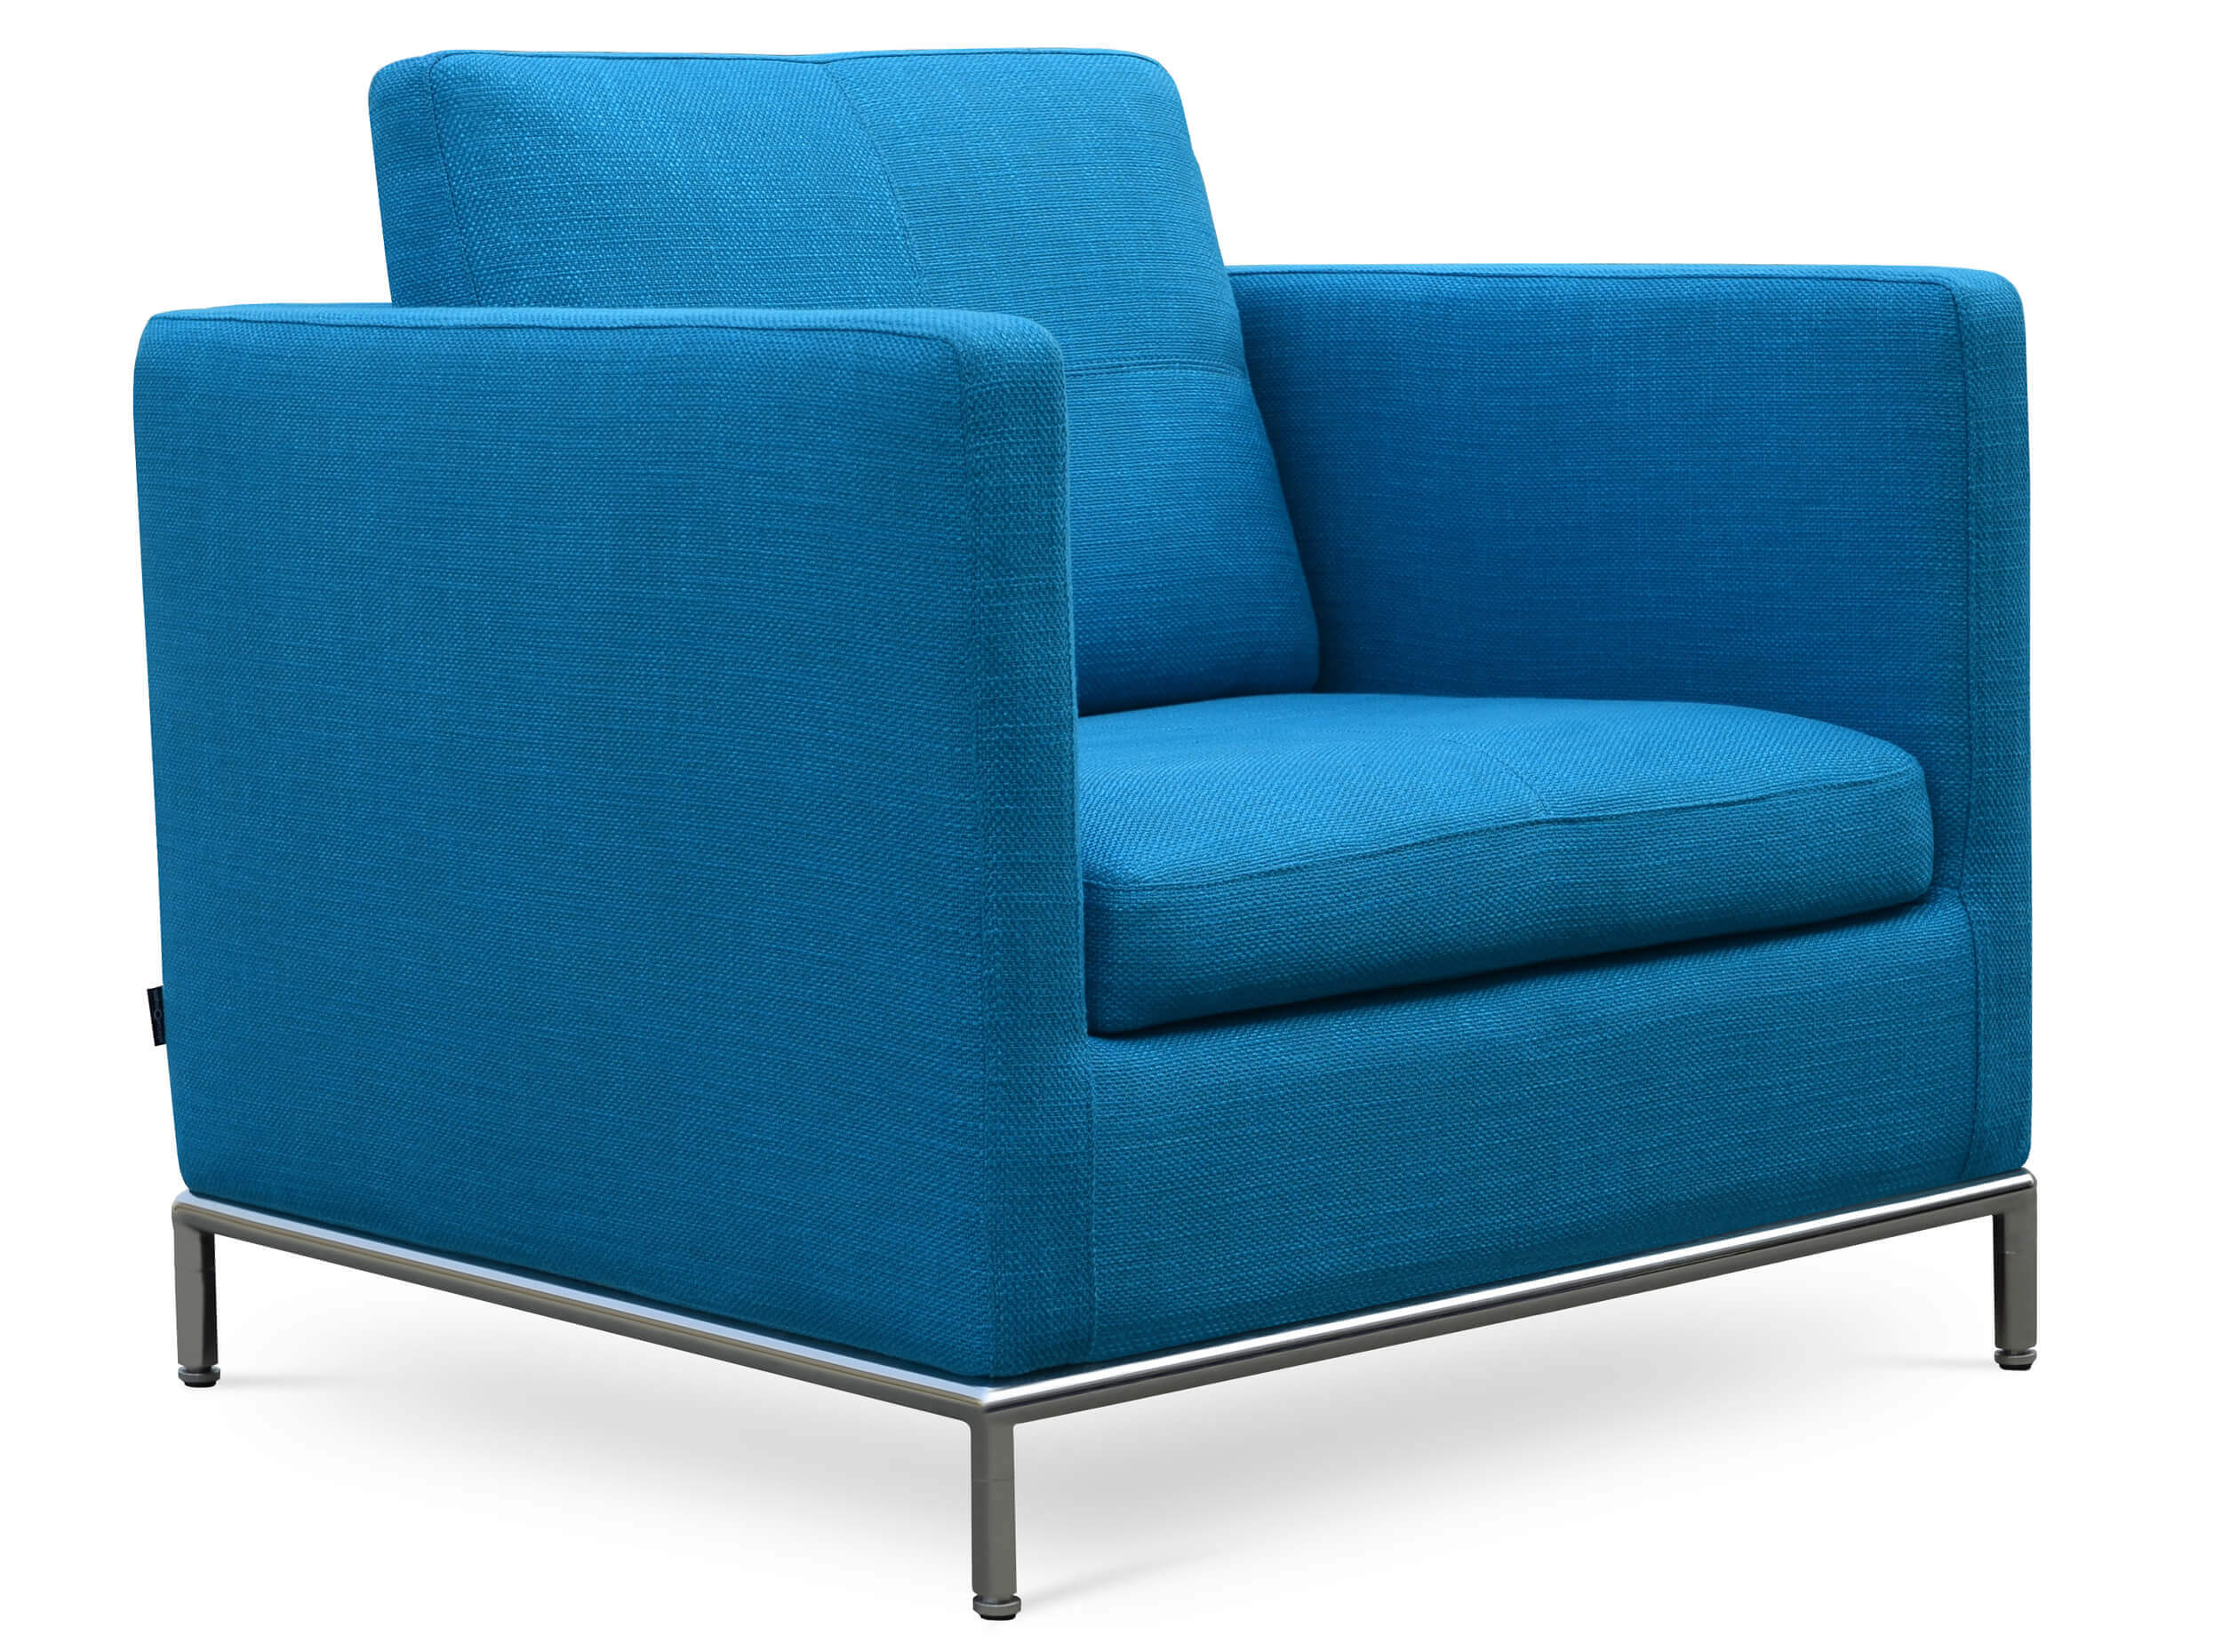 Istanbul Armchair Turquoise Fabric Buy line at Best Price SohoMod